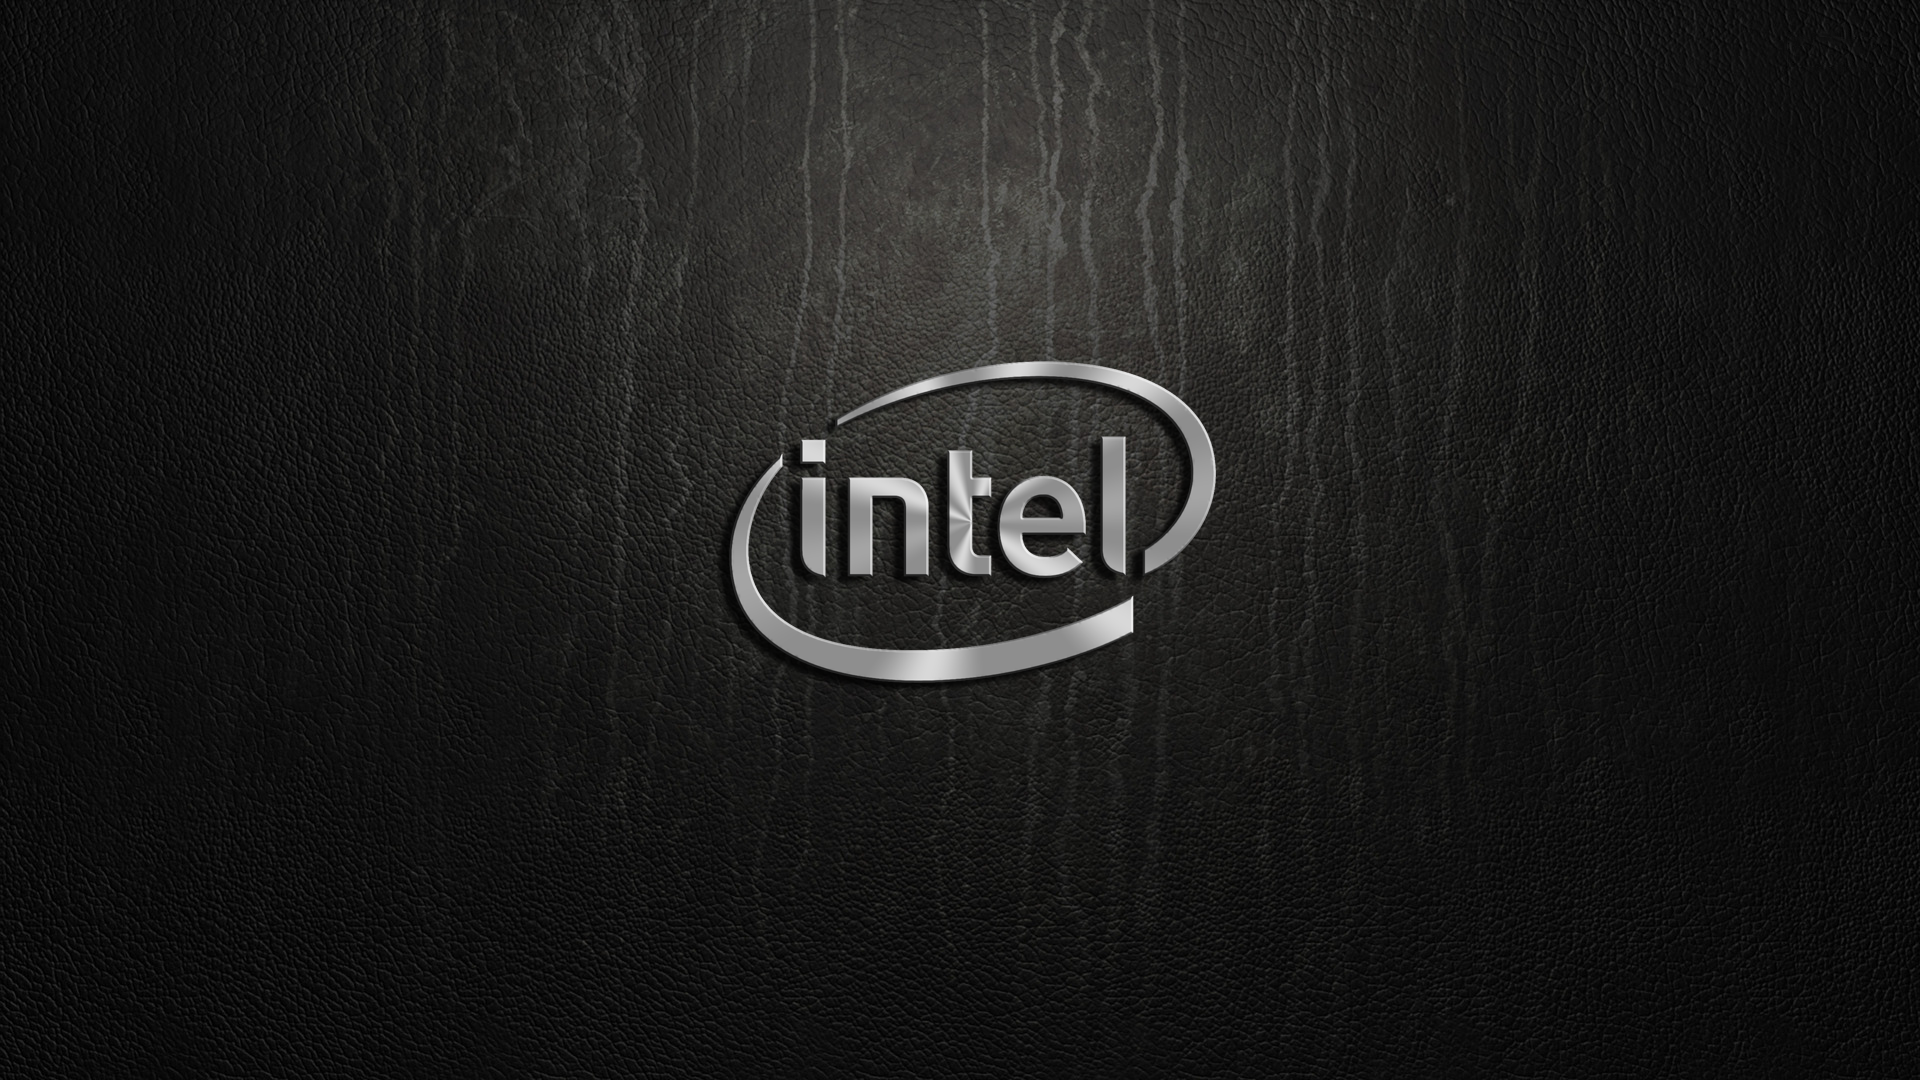 Cool Intel Wallpapers for Desktop: September 13, 2015